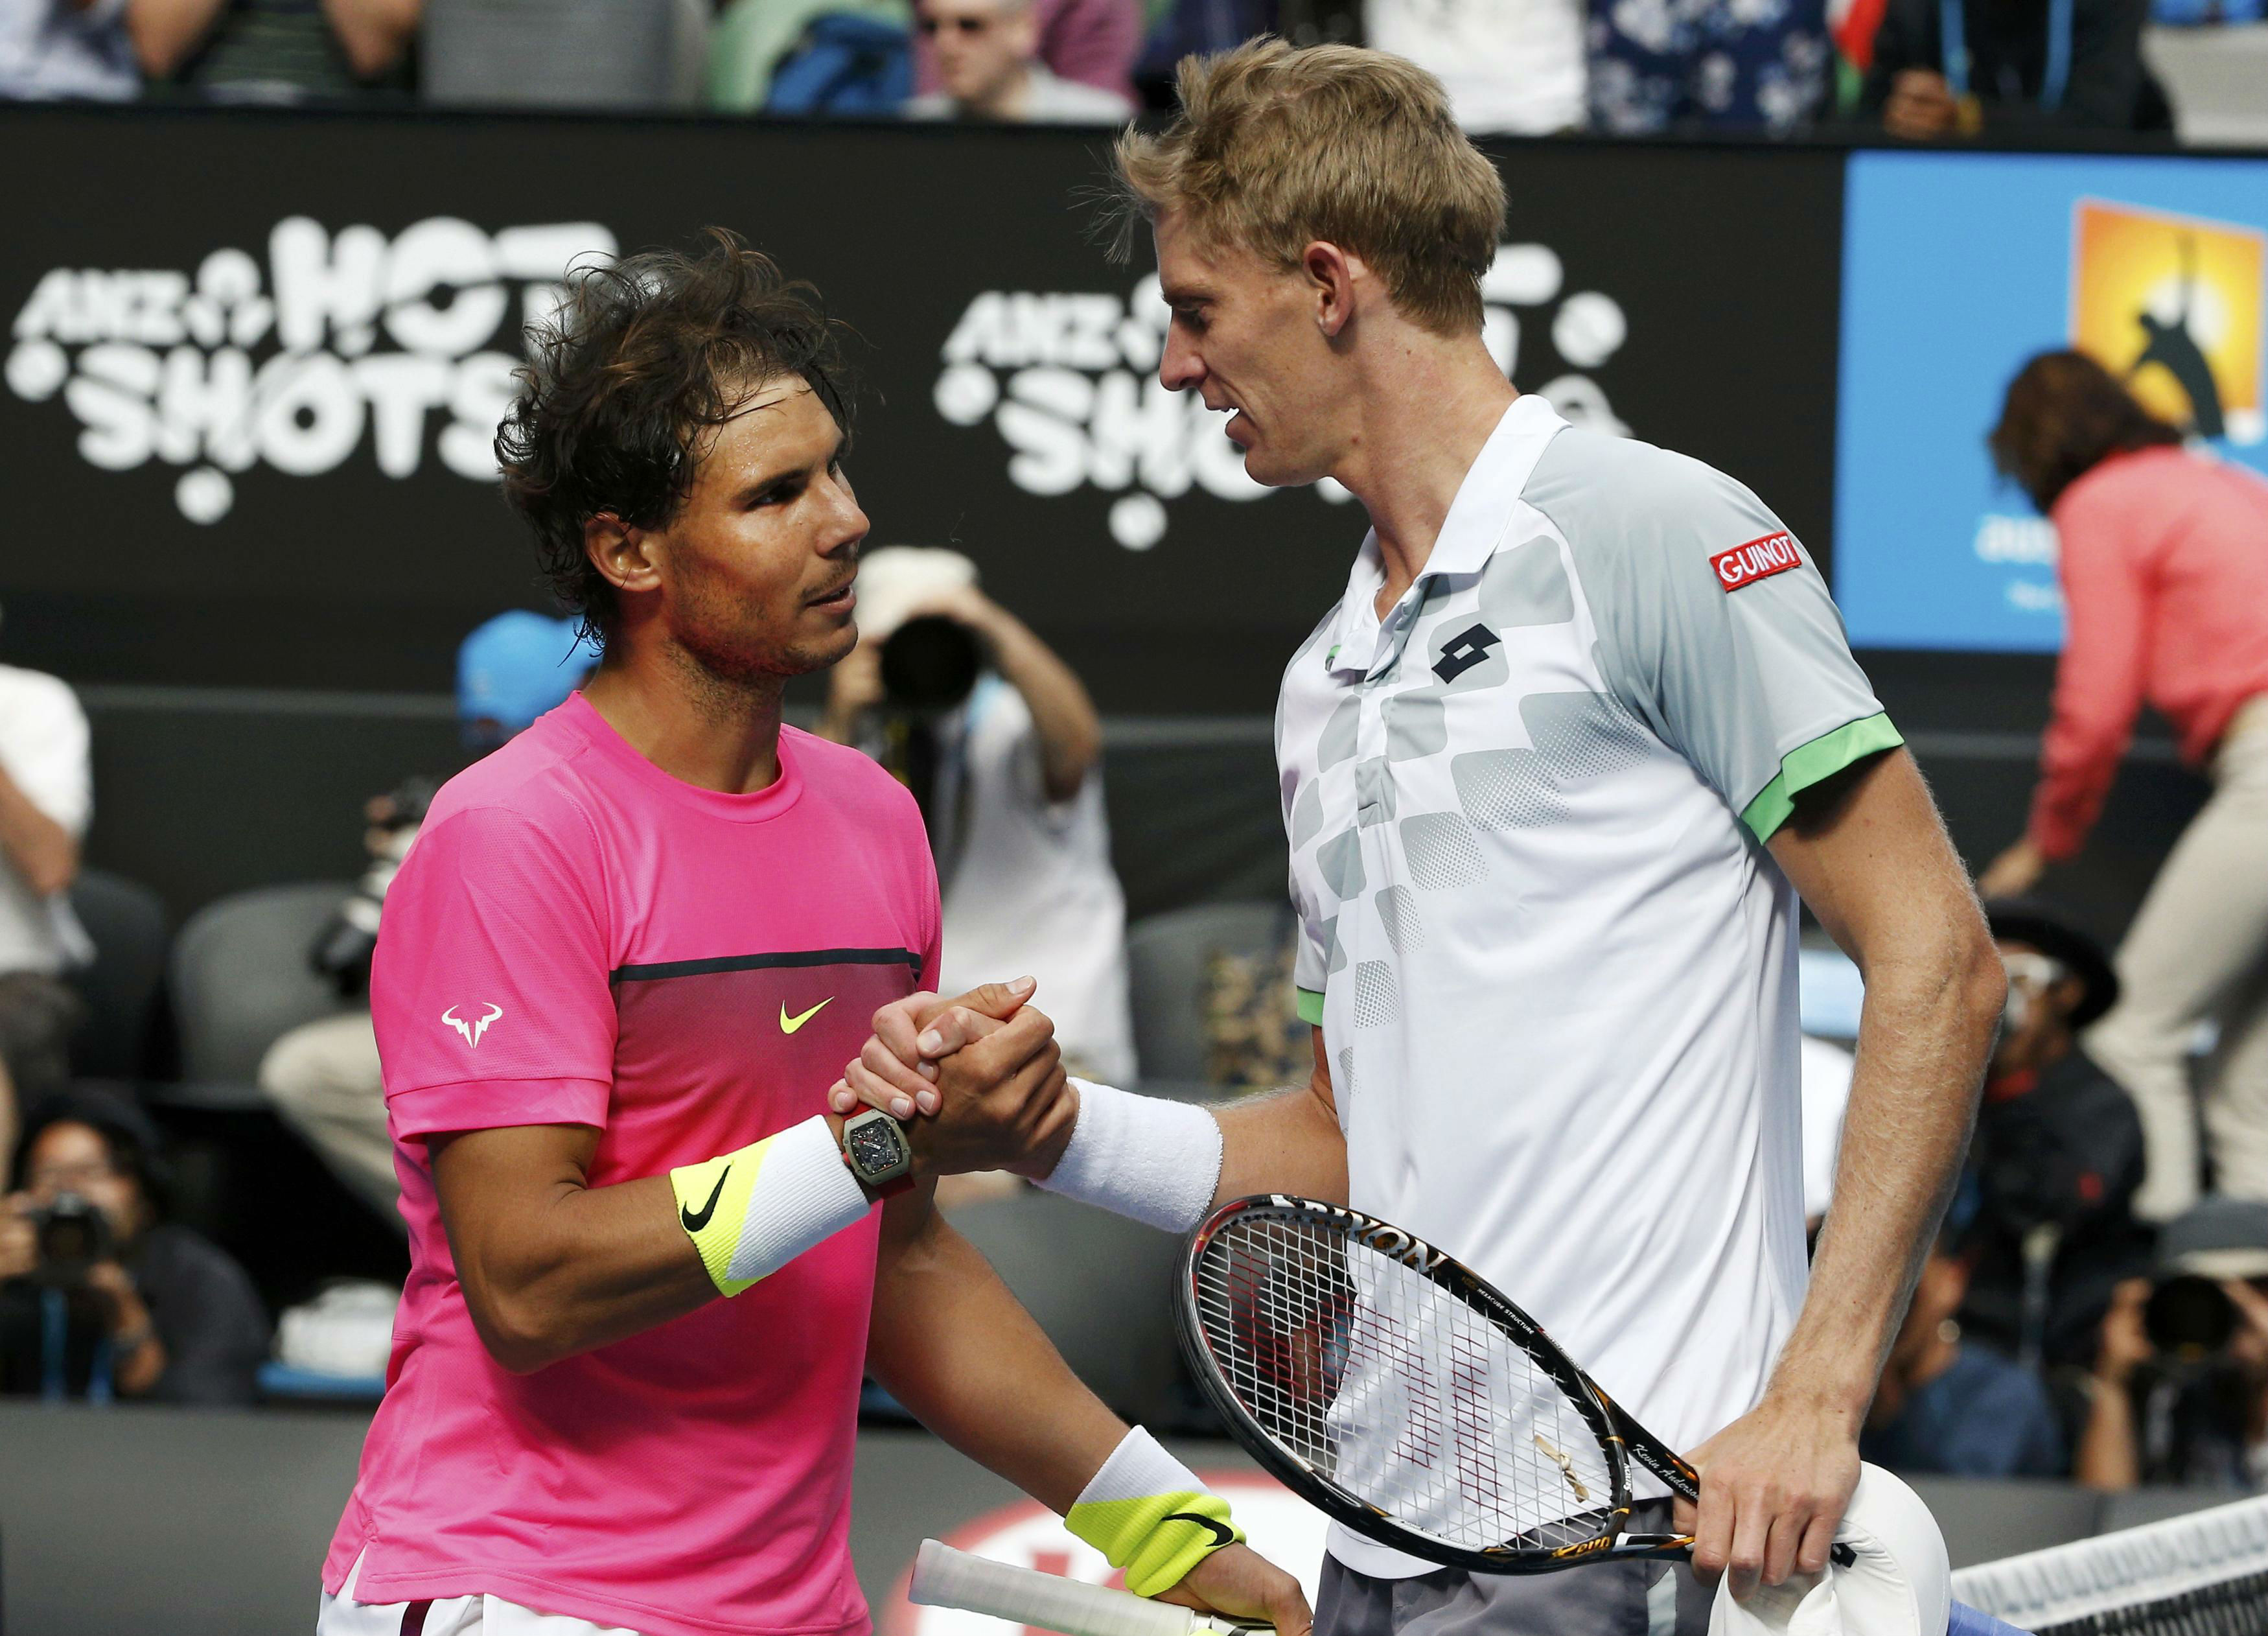 Tennis - US Open - Final - Nadal vs Anderson - Betting tips